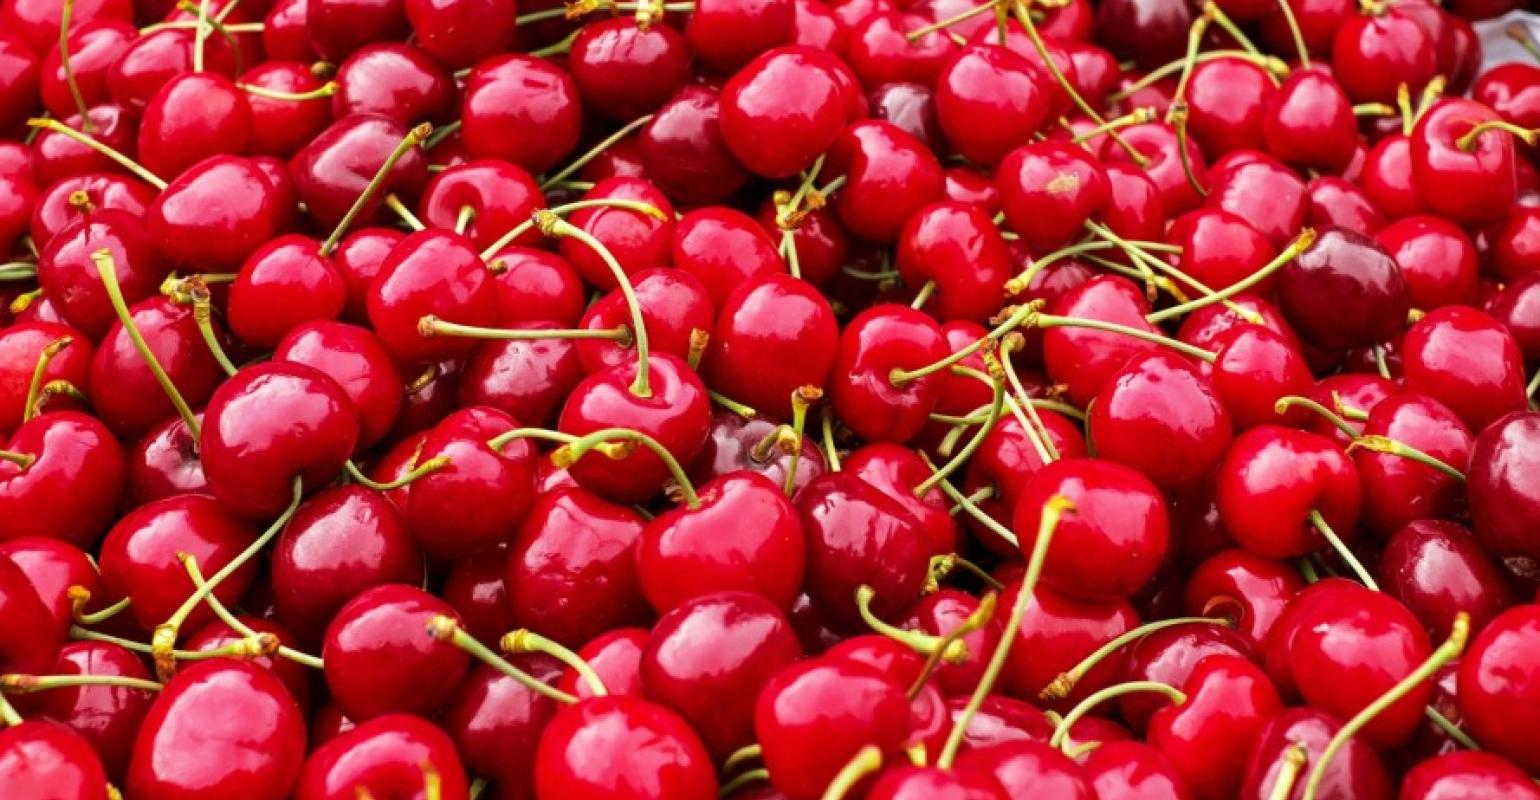 Hapag-Lloyd launches 'Cherry Express' for Chile cherry exports to Asia |  Seatrade Maritime